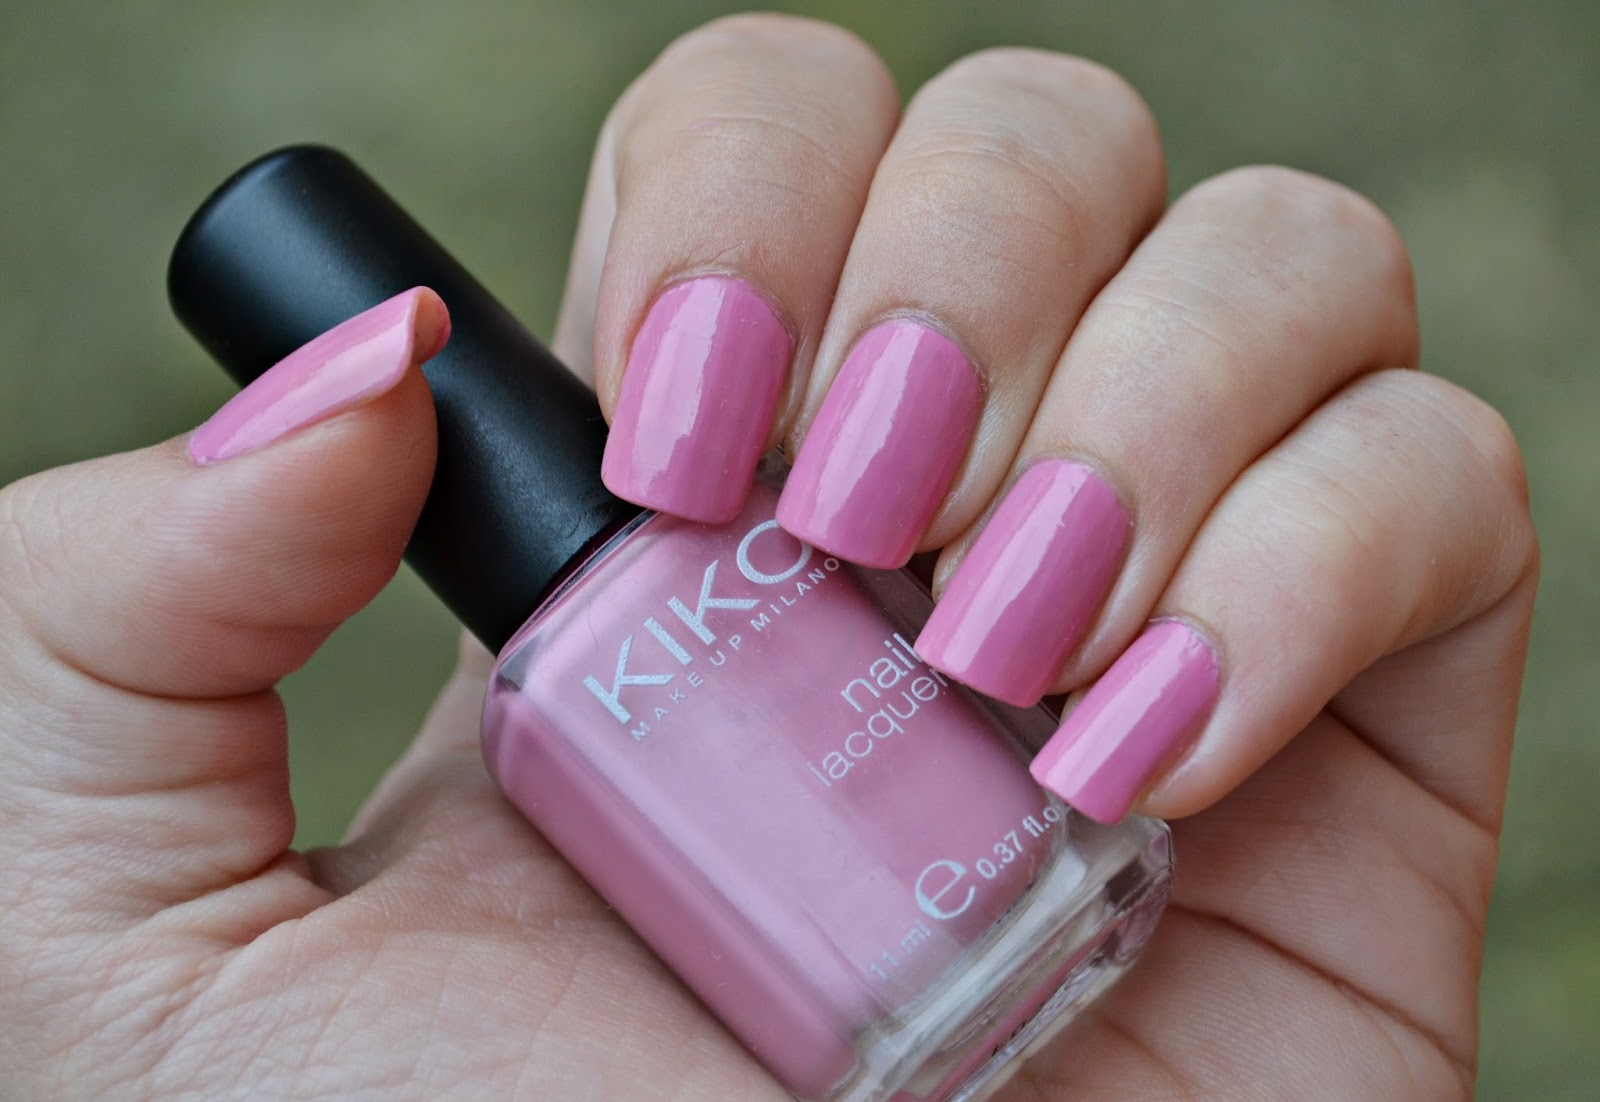 Kiko 377 Apple Blossom